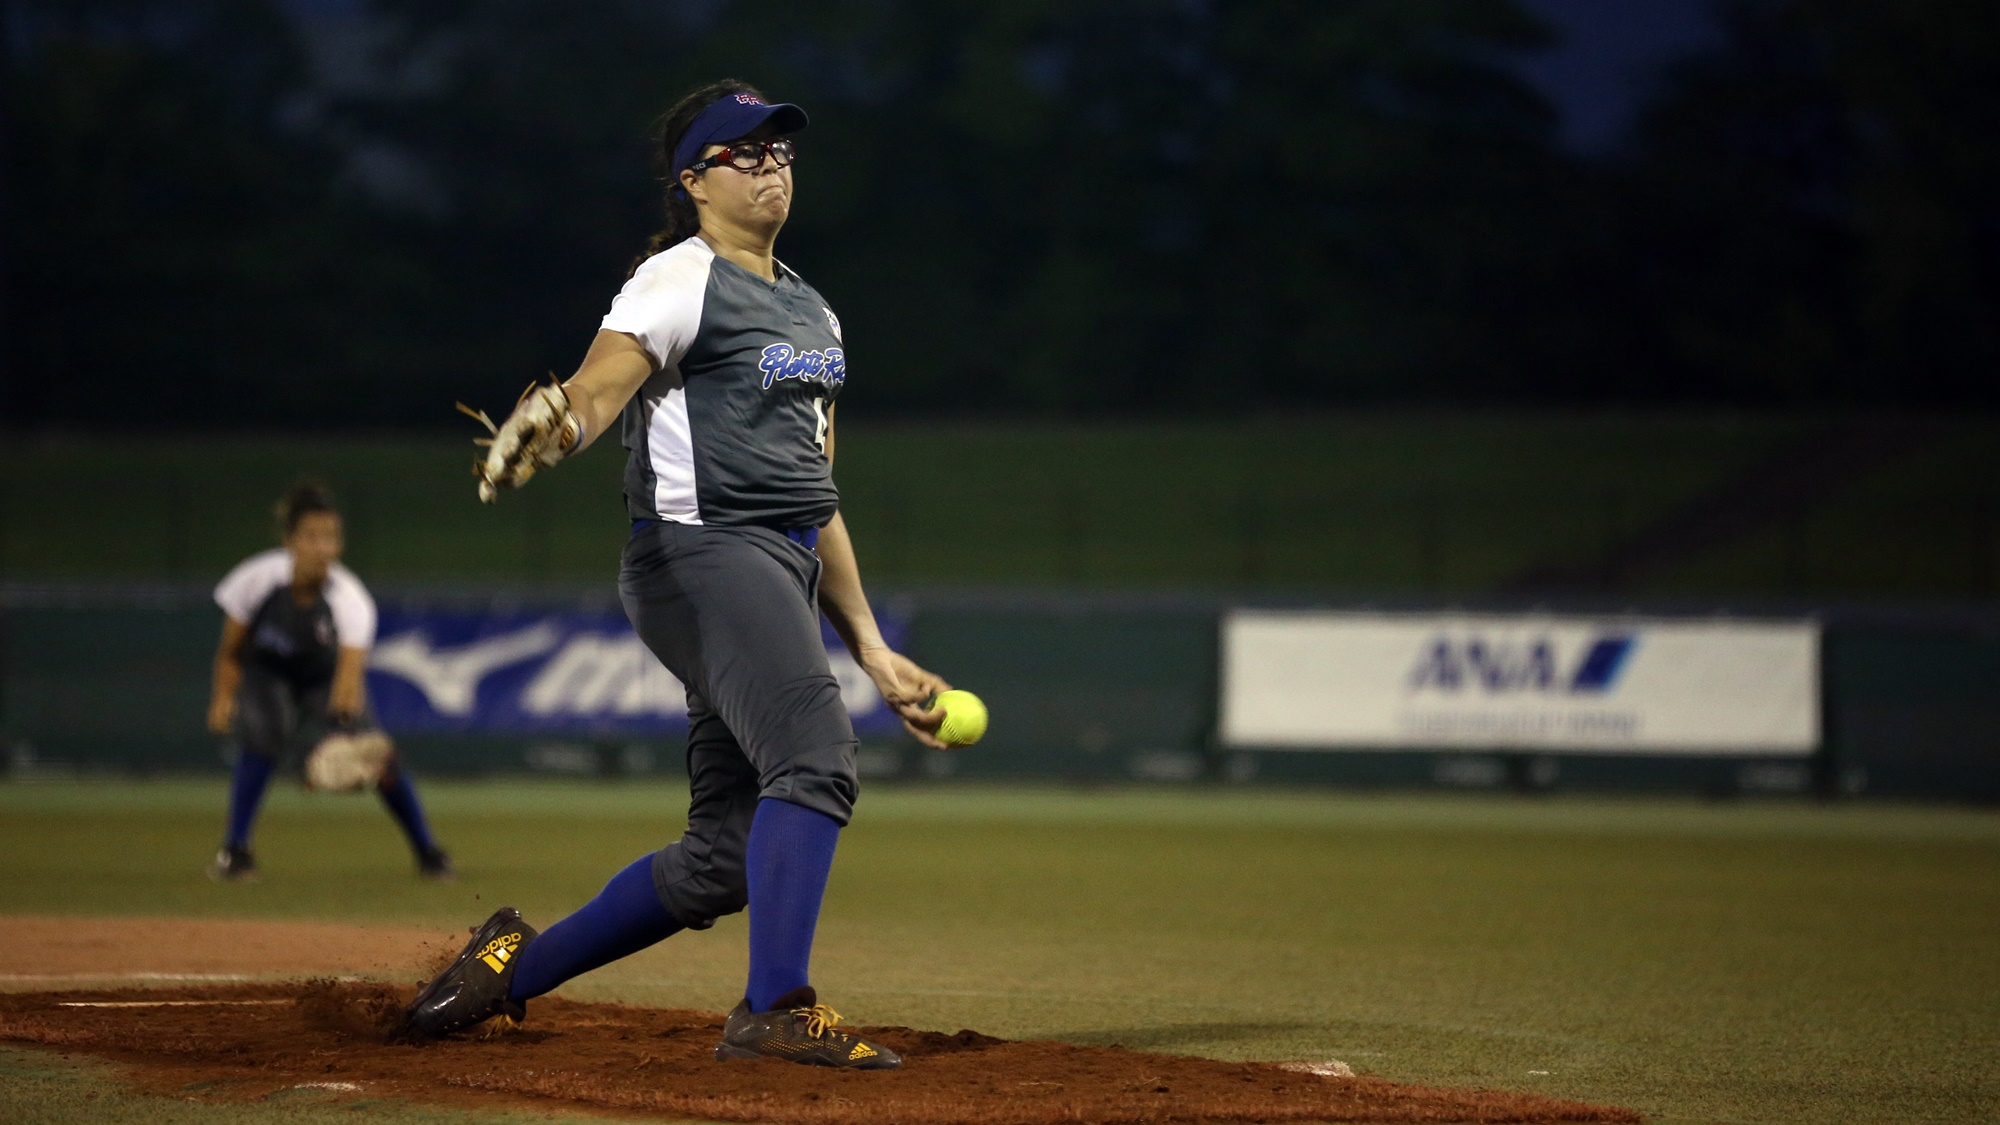 Jamee Juarez pitched a no hitter against Philippines